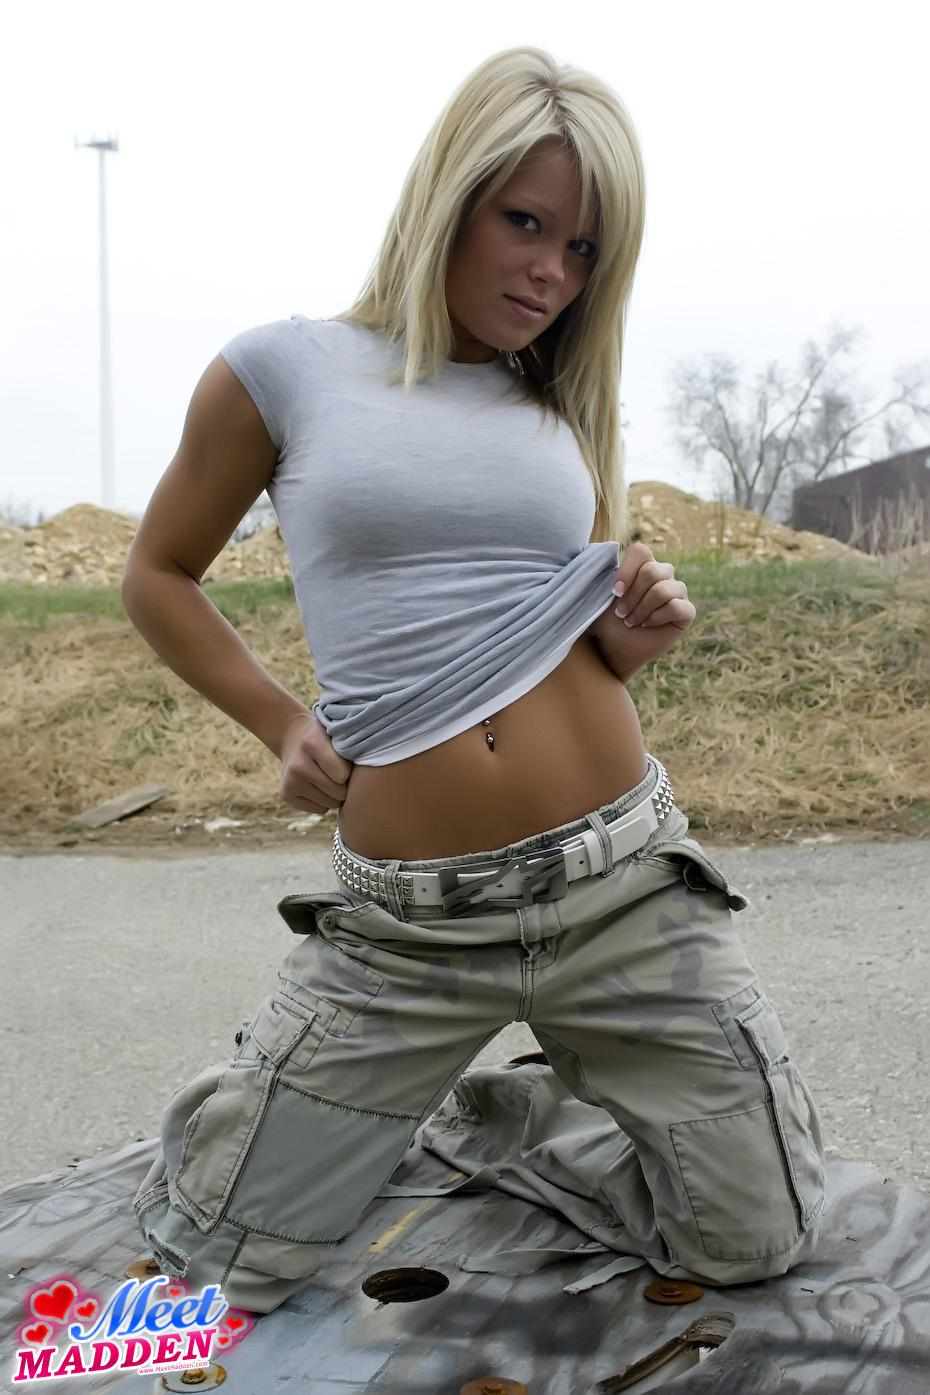 Meet Madden looks ready for action in combat pants | Daily Girls @ Female Update